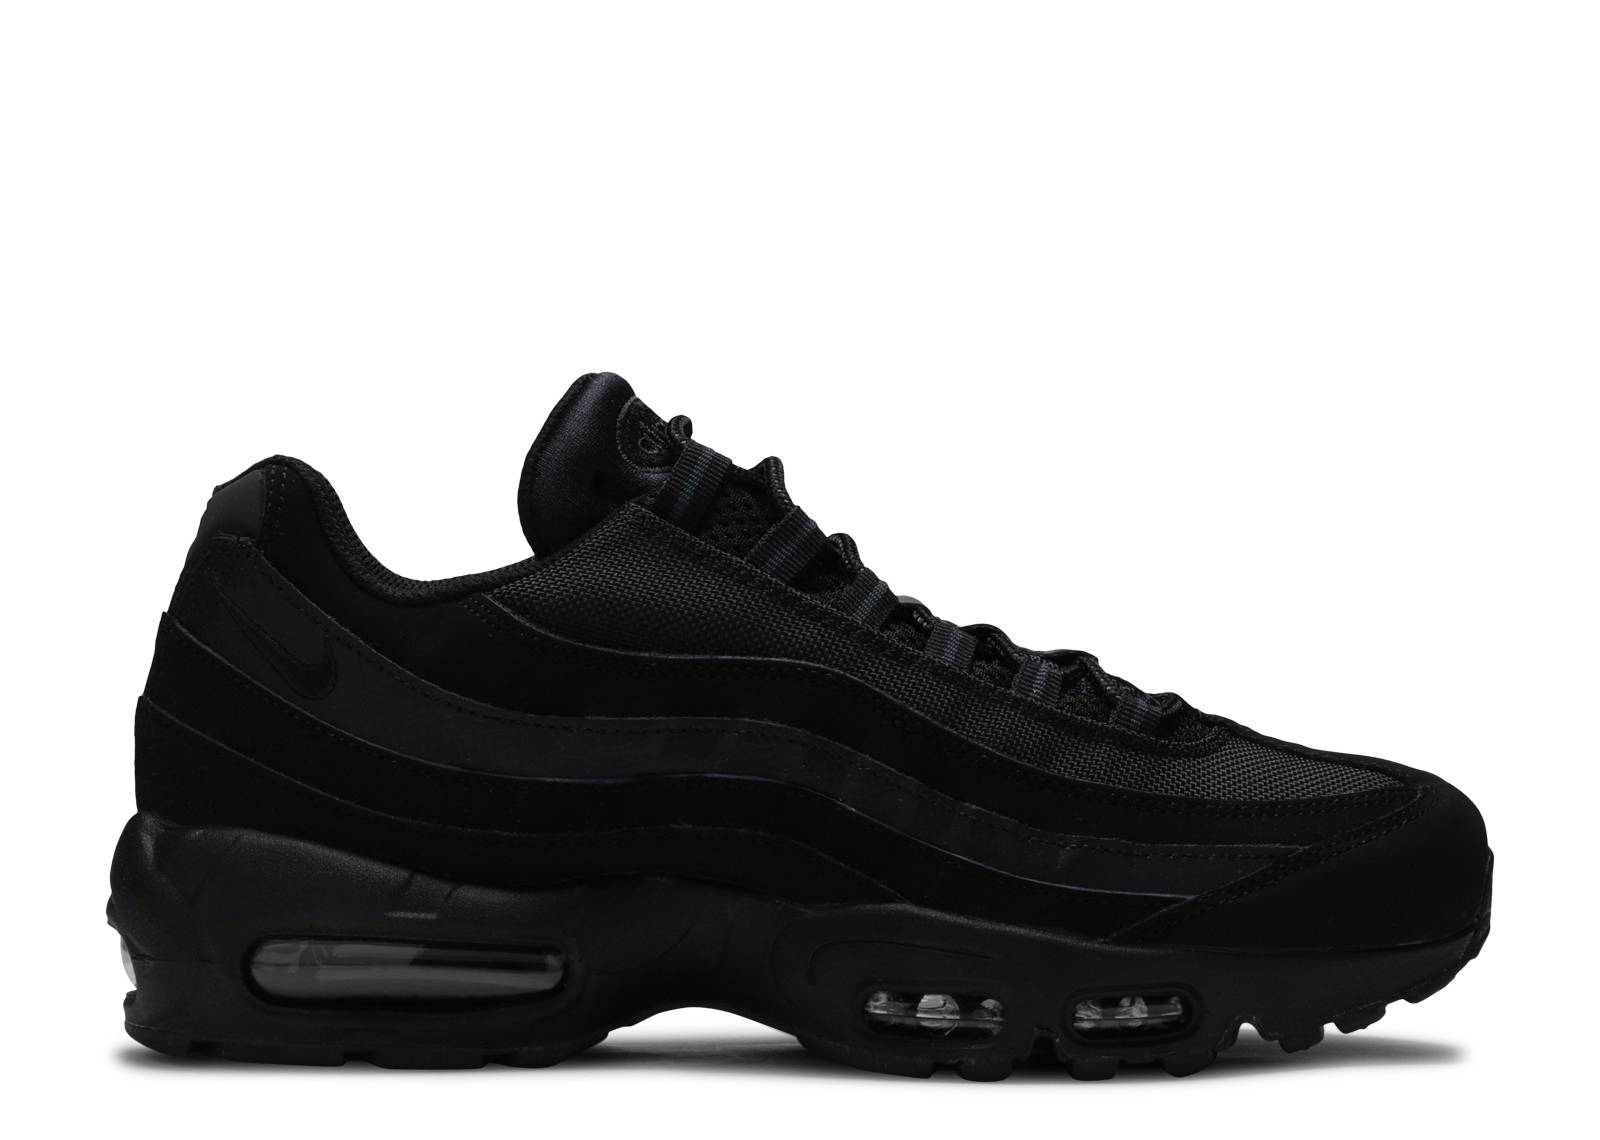 save off 49d24 4048c Nike Air Max 95 - Men's & Women's Shoes | Flight Club